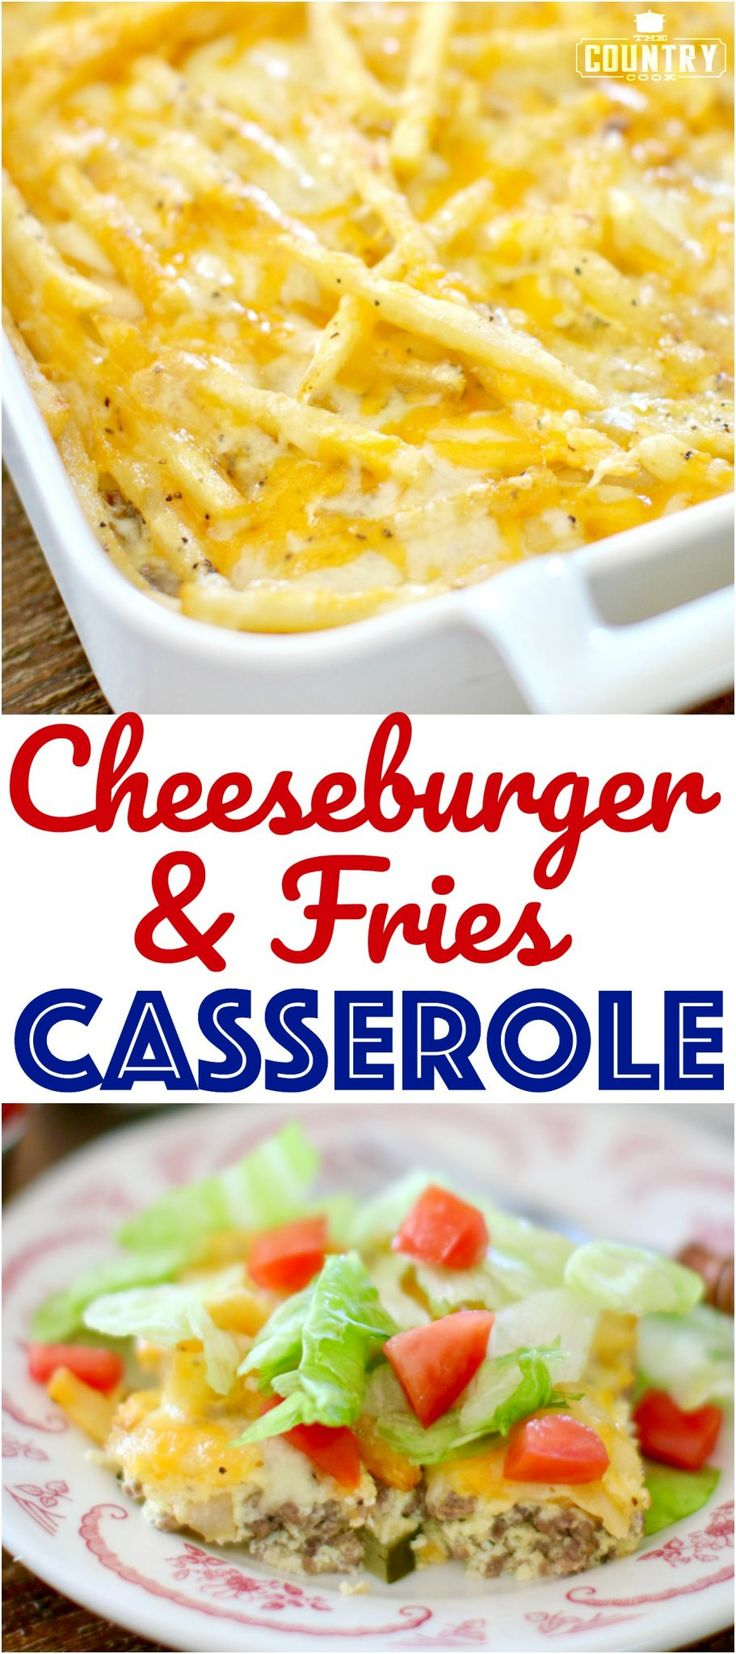 Cheeseburger and Fries Casserole recipe from The Country Cook with @egglandsbest eggs! #ad